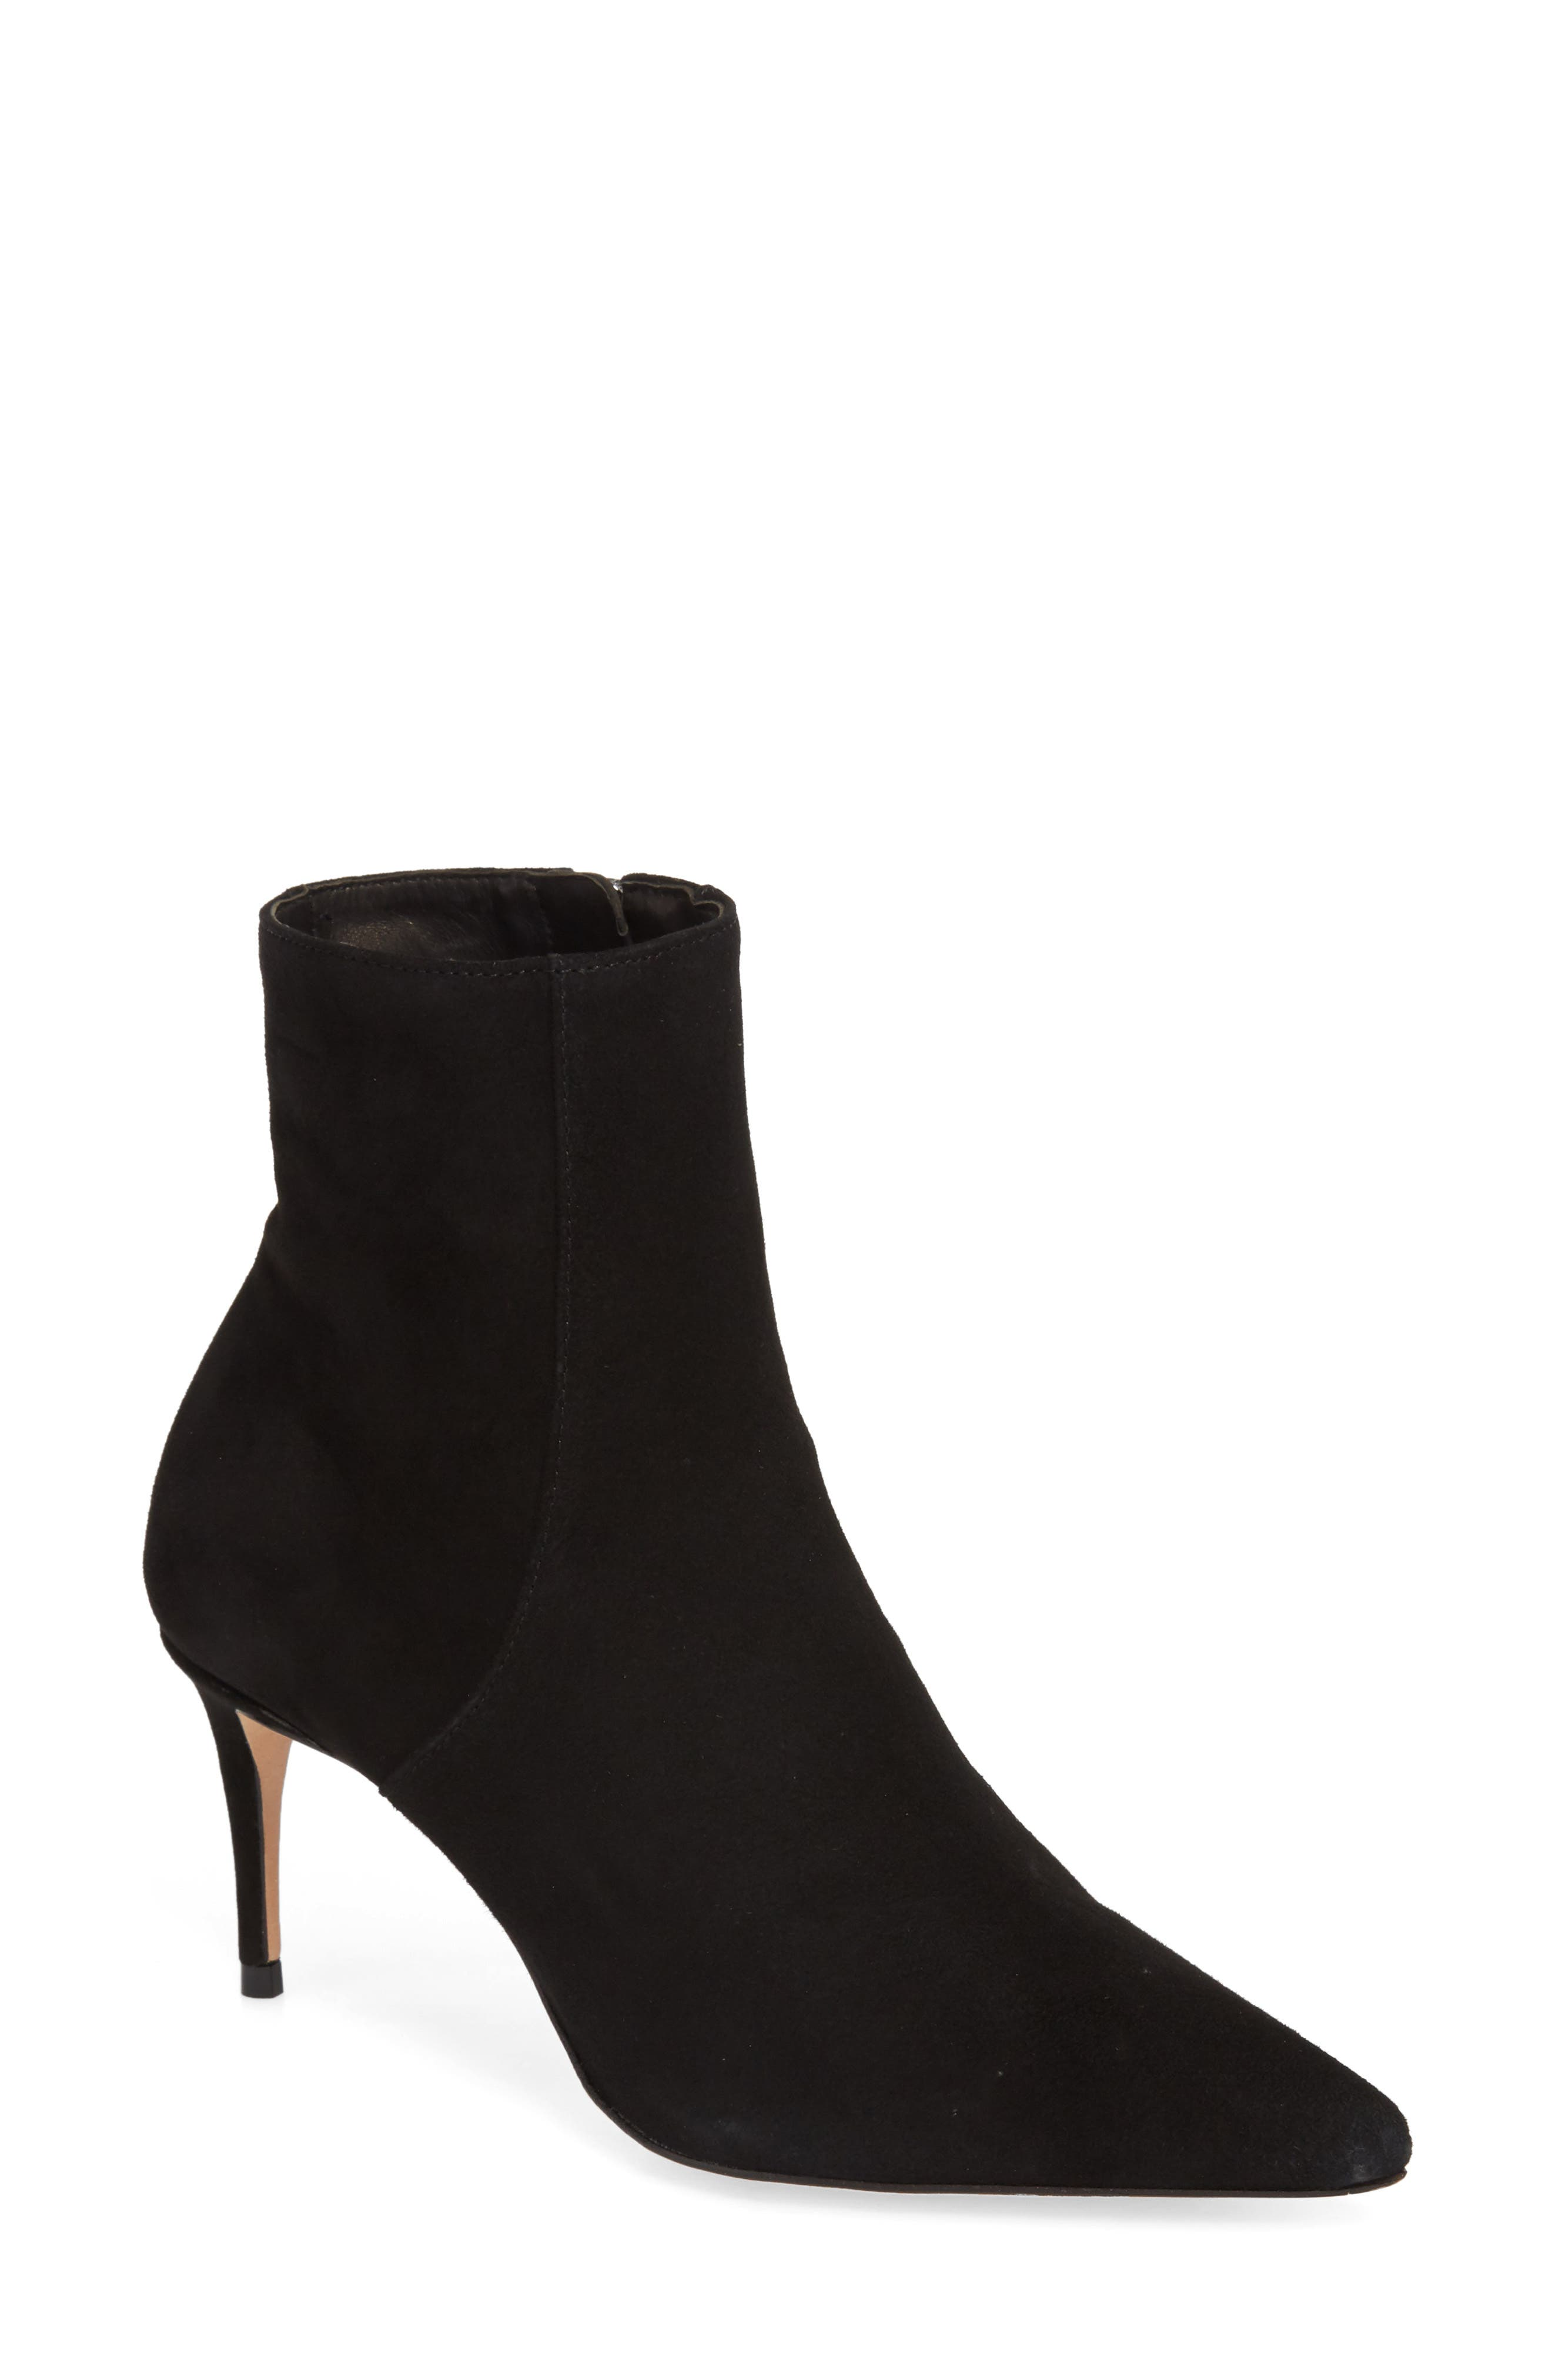 Bette Bootie,                             Main thumbnail 1, color,                             BLACK SUEDE